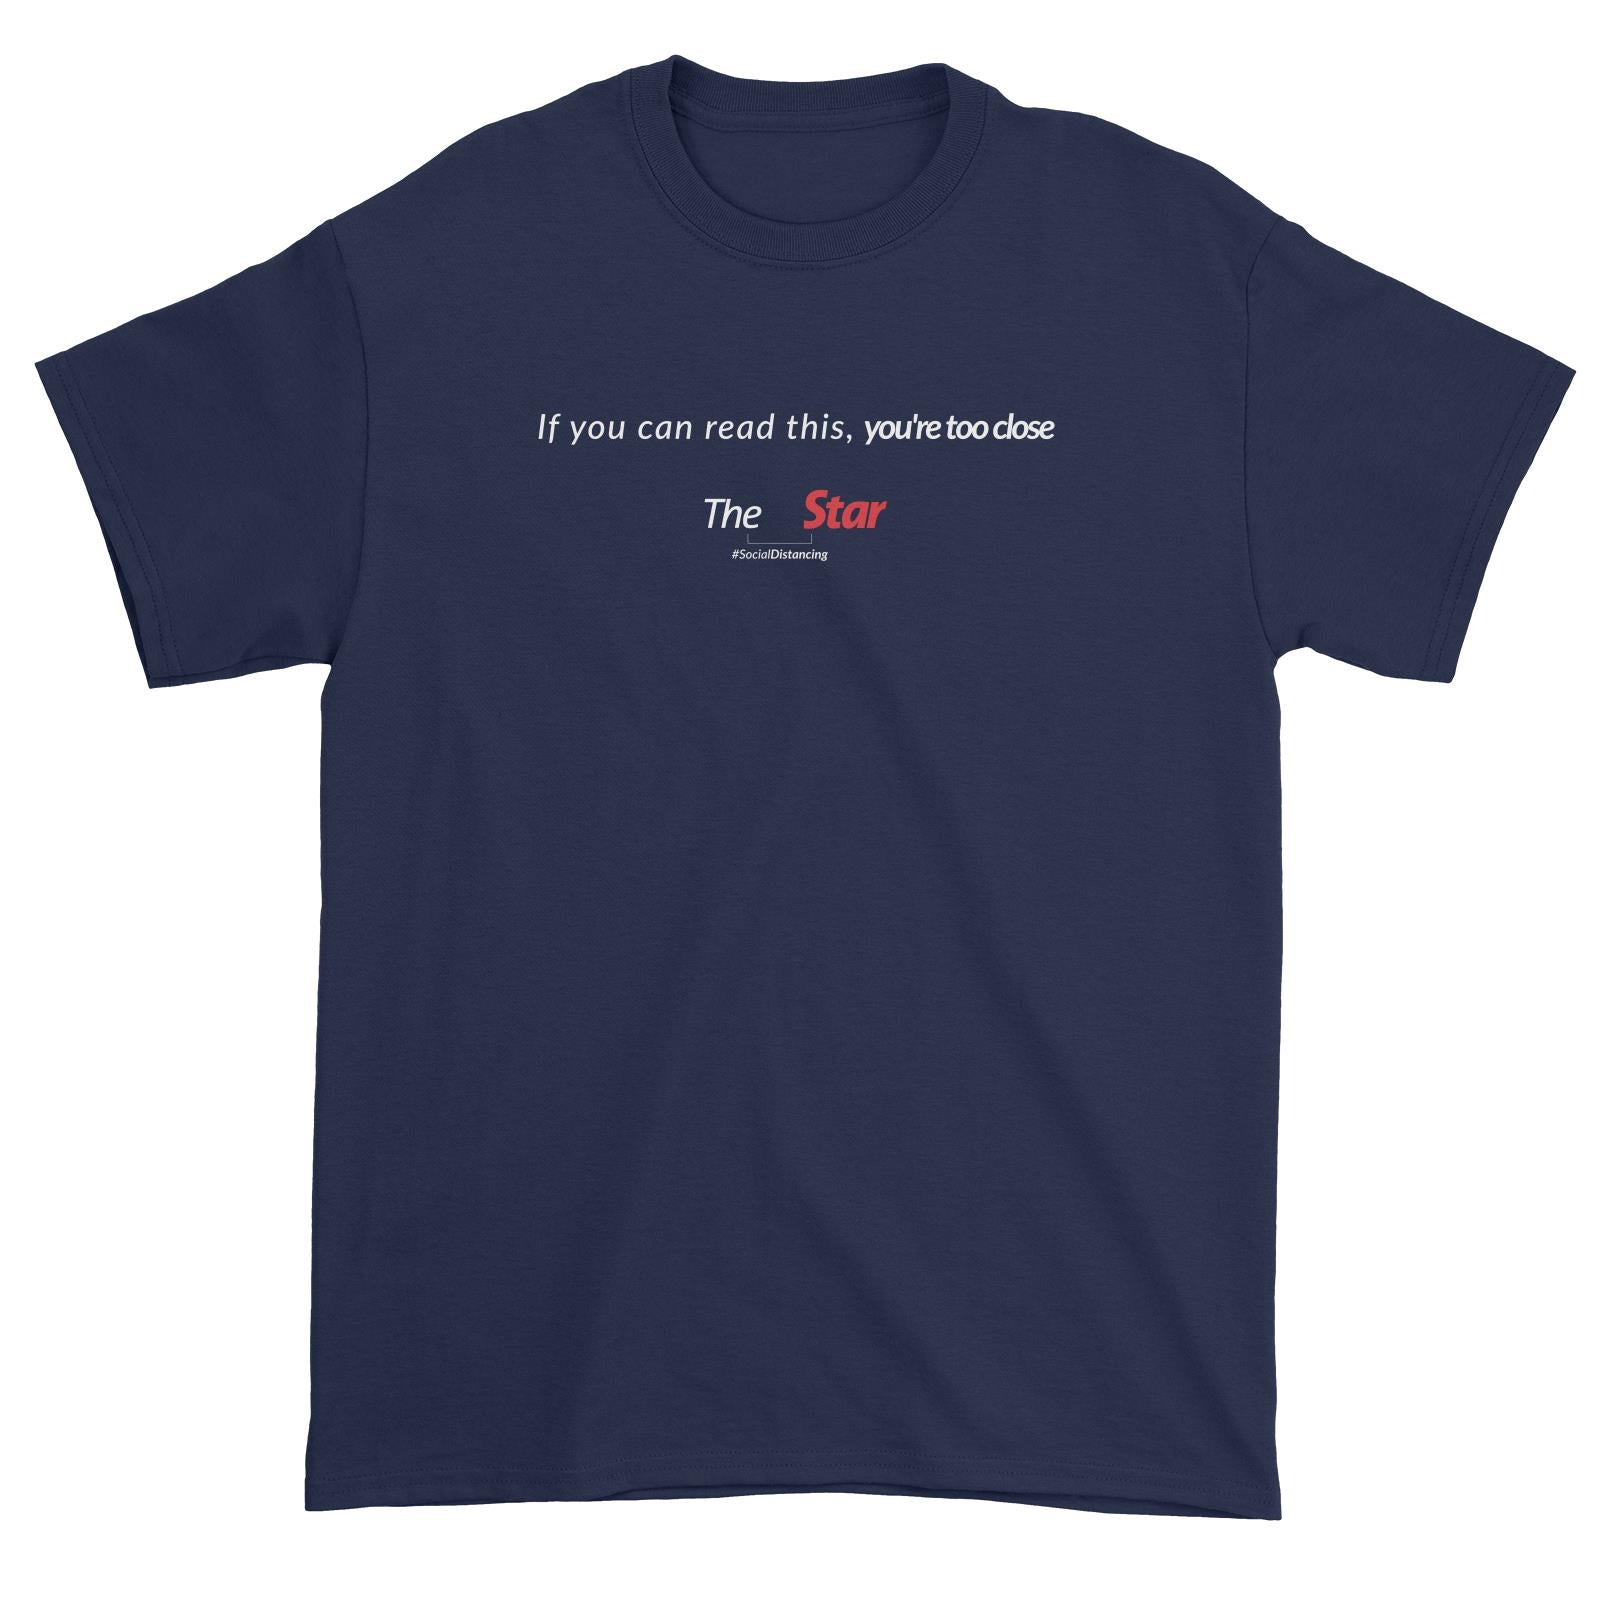 You're Too Close Physical Distancing Standard Unisex T-Shirt